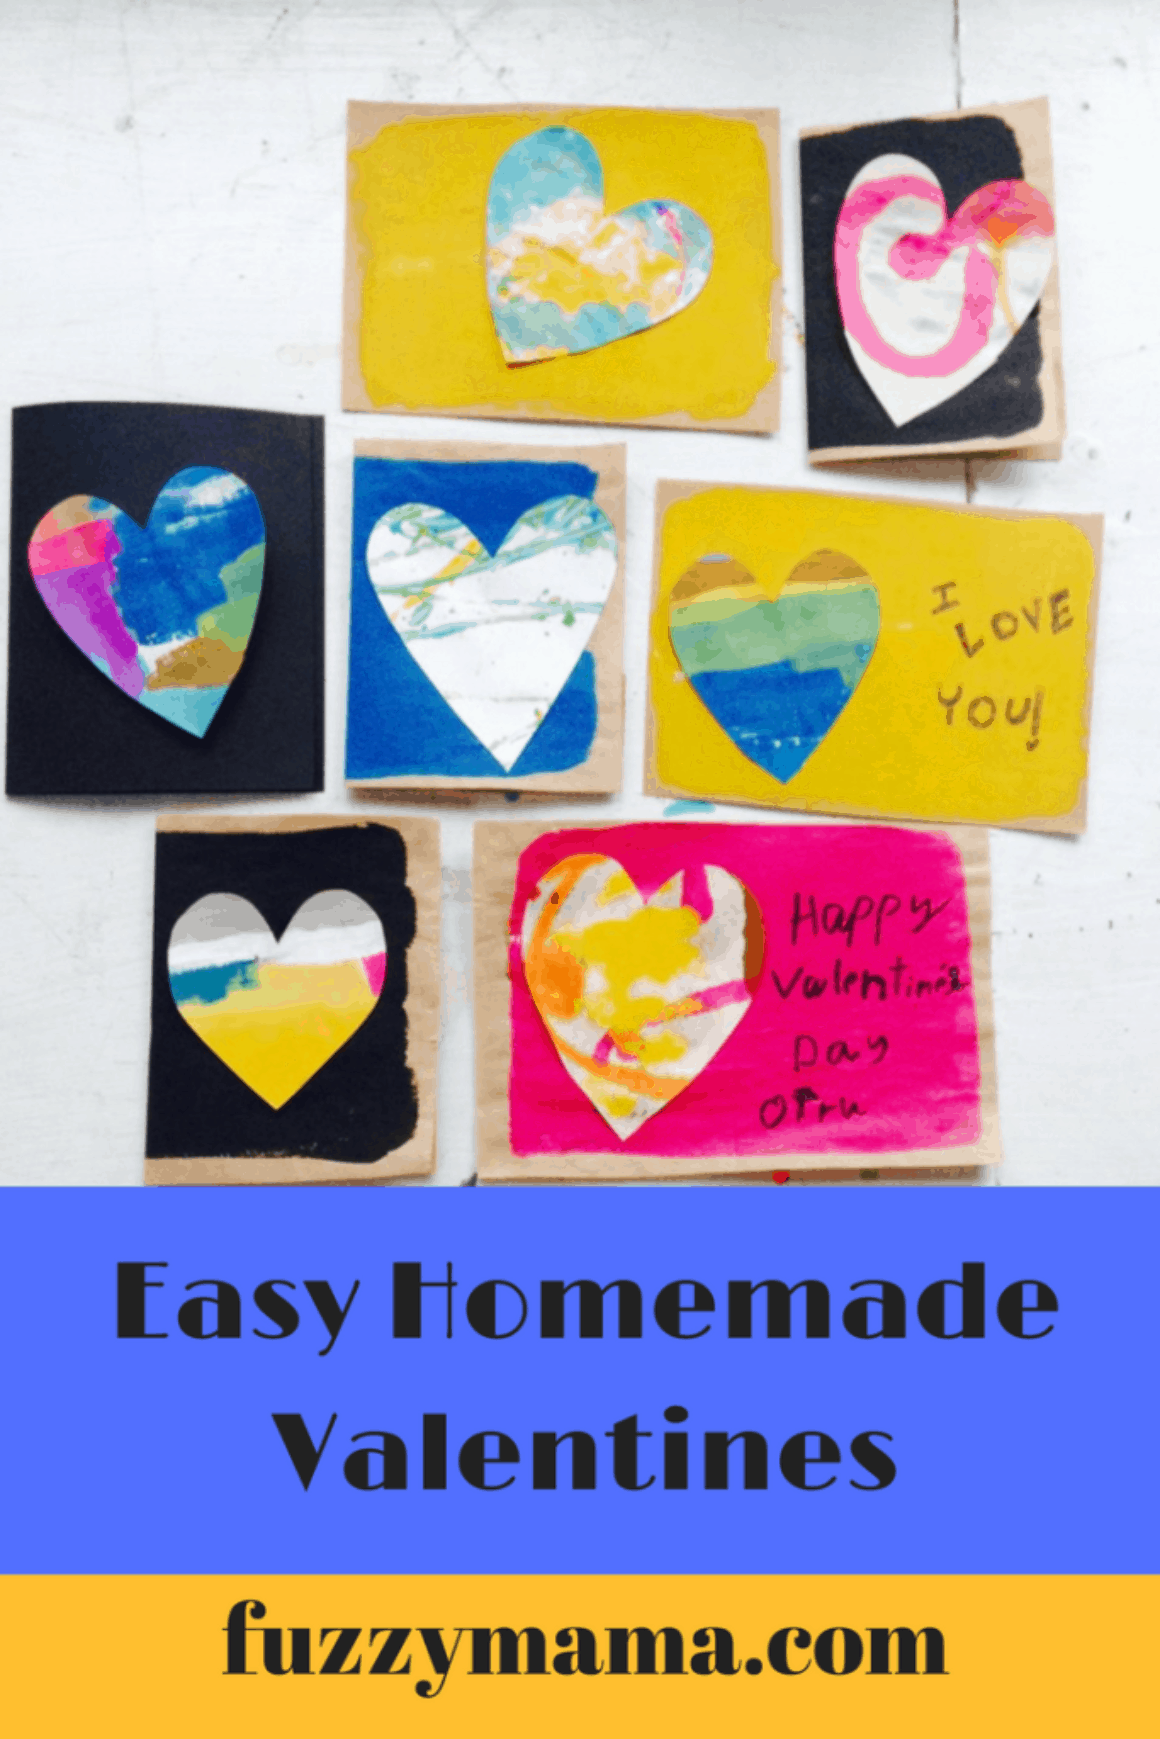 easy homemade valentines